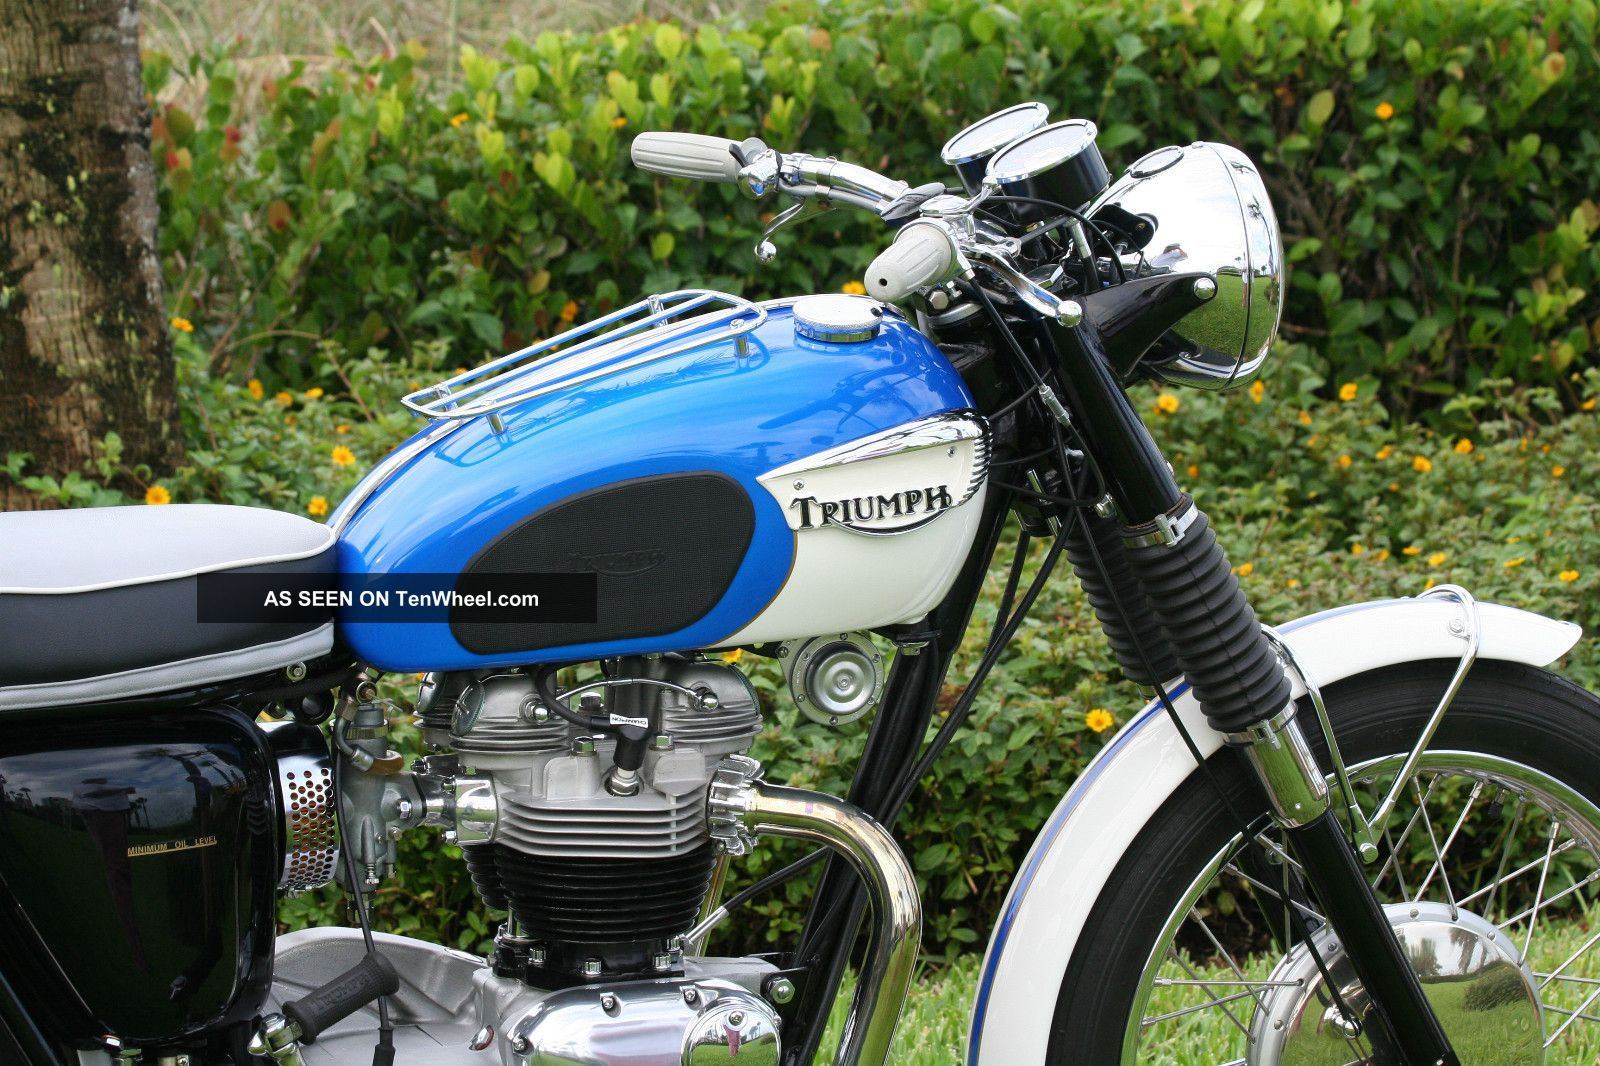 1966 Triumph Tr6sr Trophy Motorcycle Amca Winners Circle